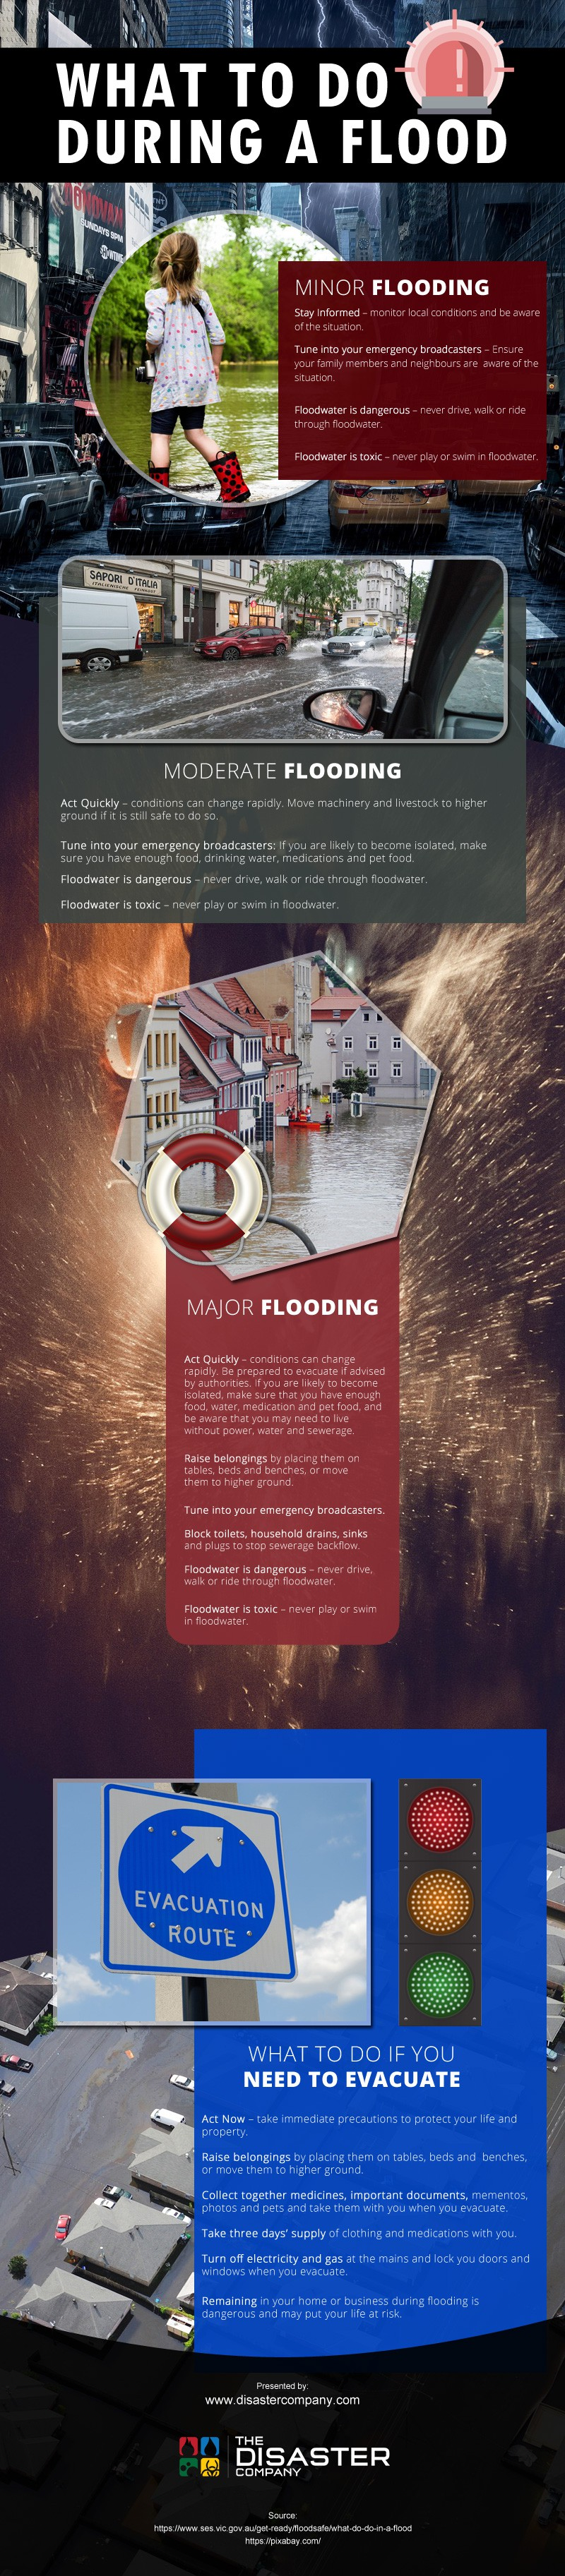 What to Do During a Flood [infographic]